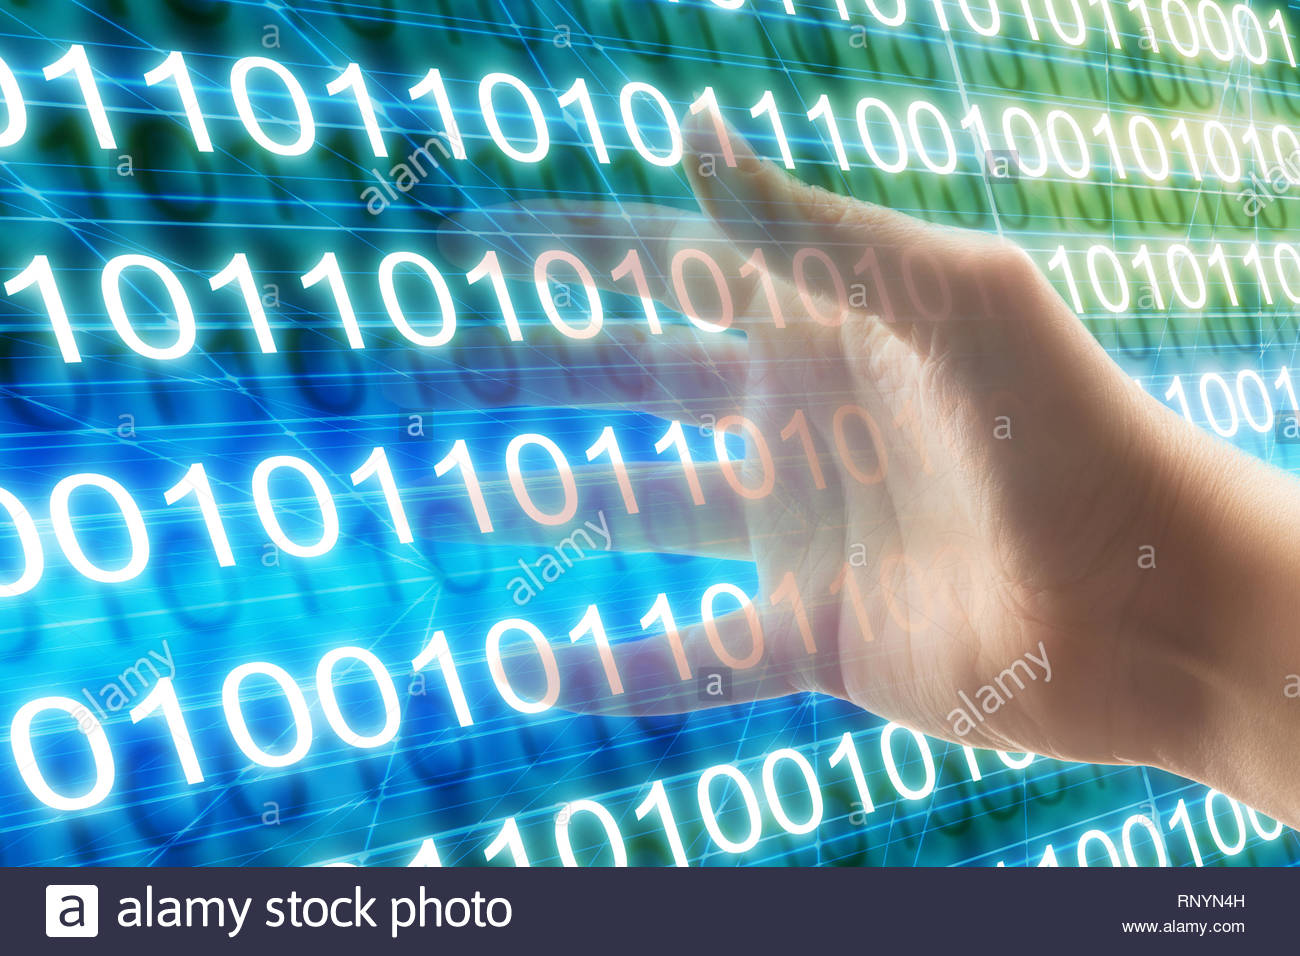 hand grabbing code, cybercrime and code breaking concept - Stock Image